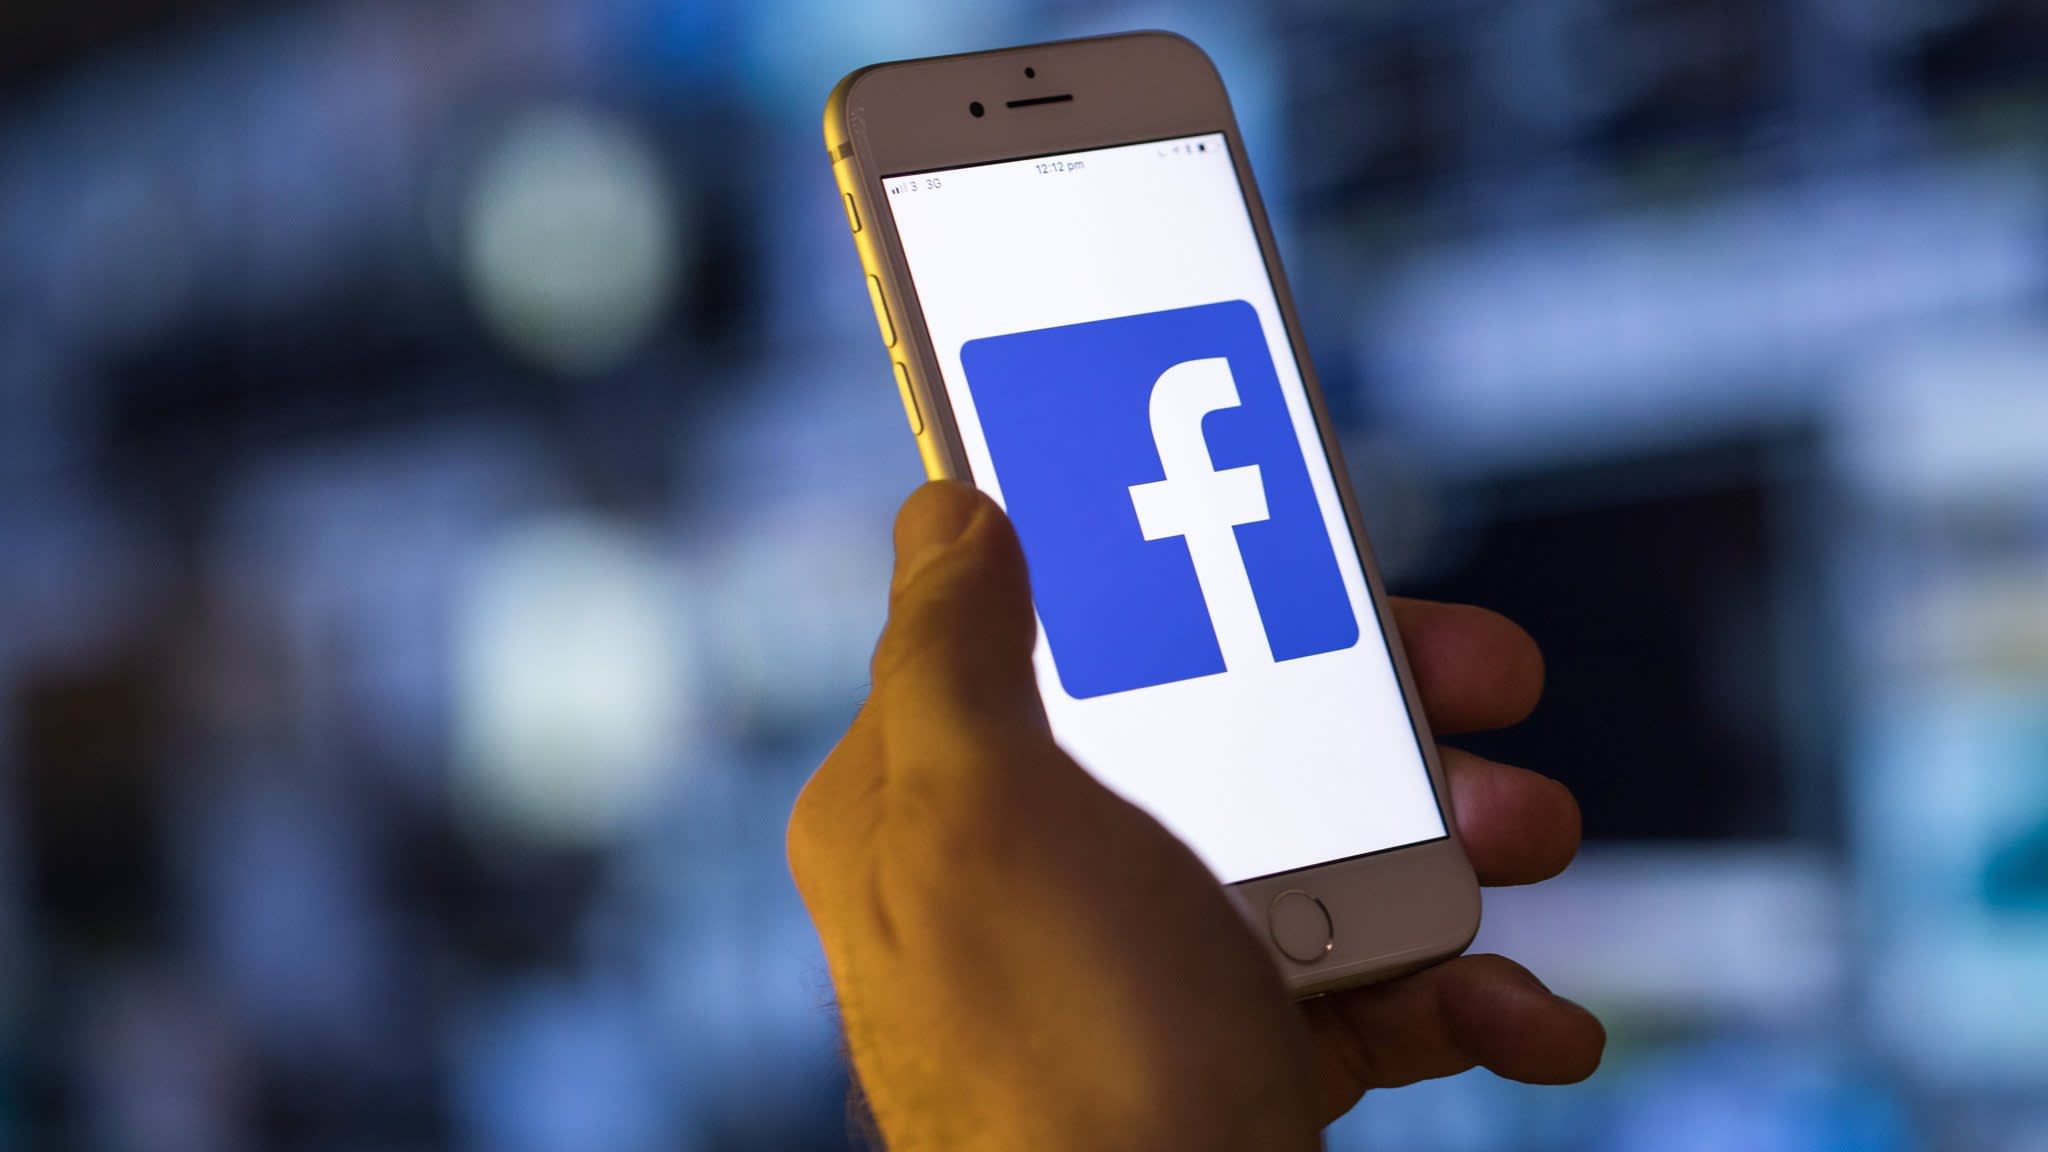 Facebook pulls security app from Apple store over privacy